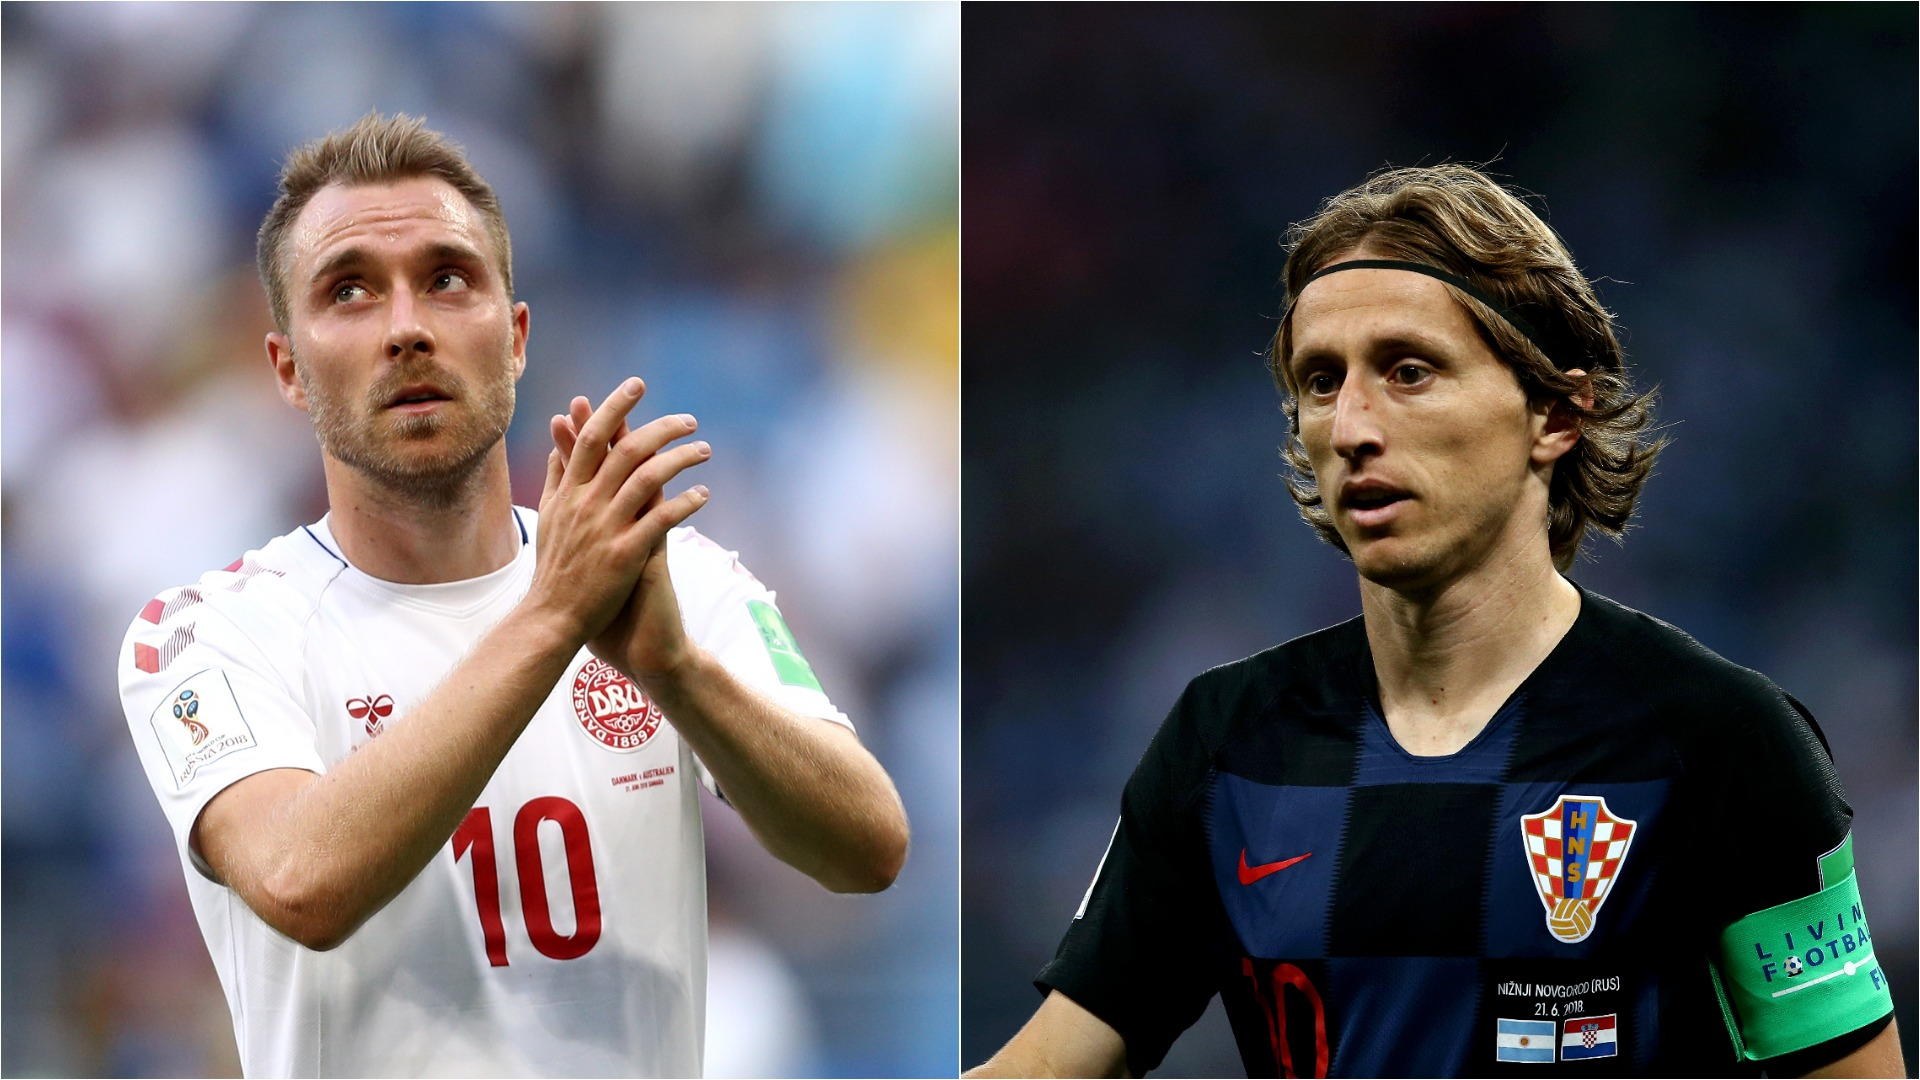 Modric misses penalty CRO 1 DEN 1